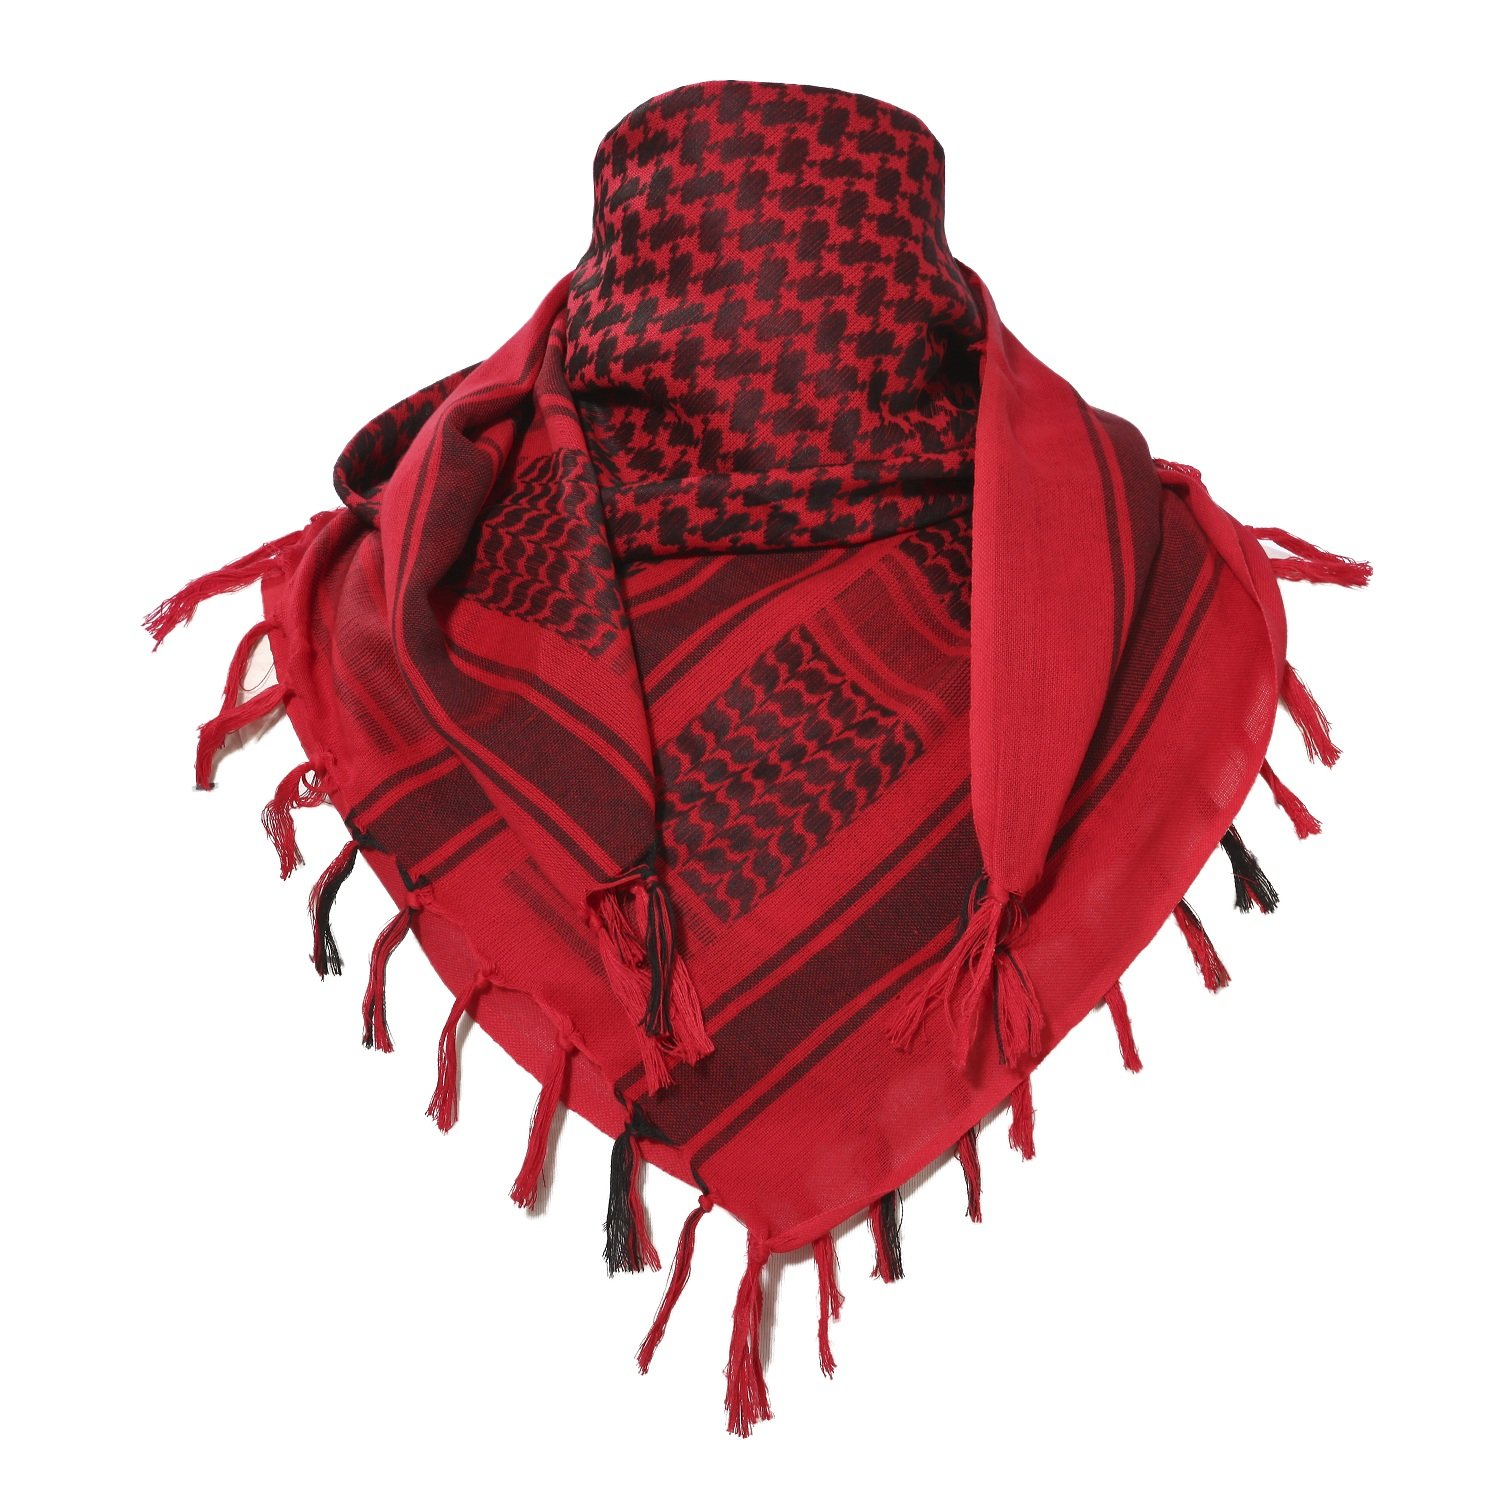 100% Cotton Keffiyeh Tactical Desert Scarf Wrap Shemagh Head Neck Arab Scarf Red